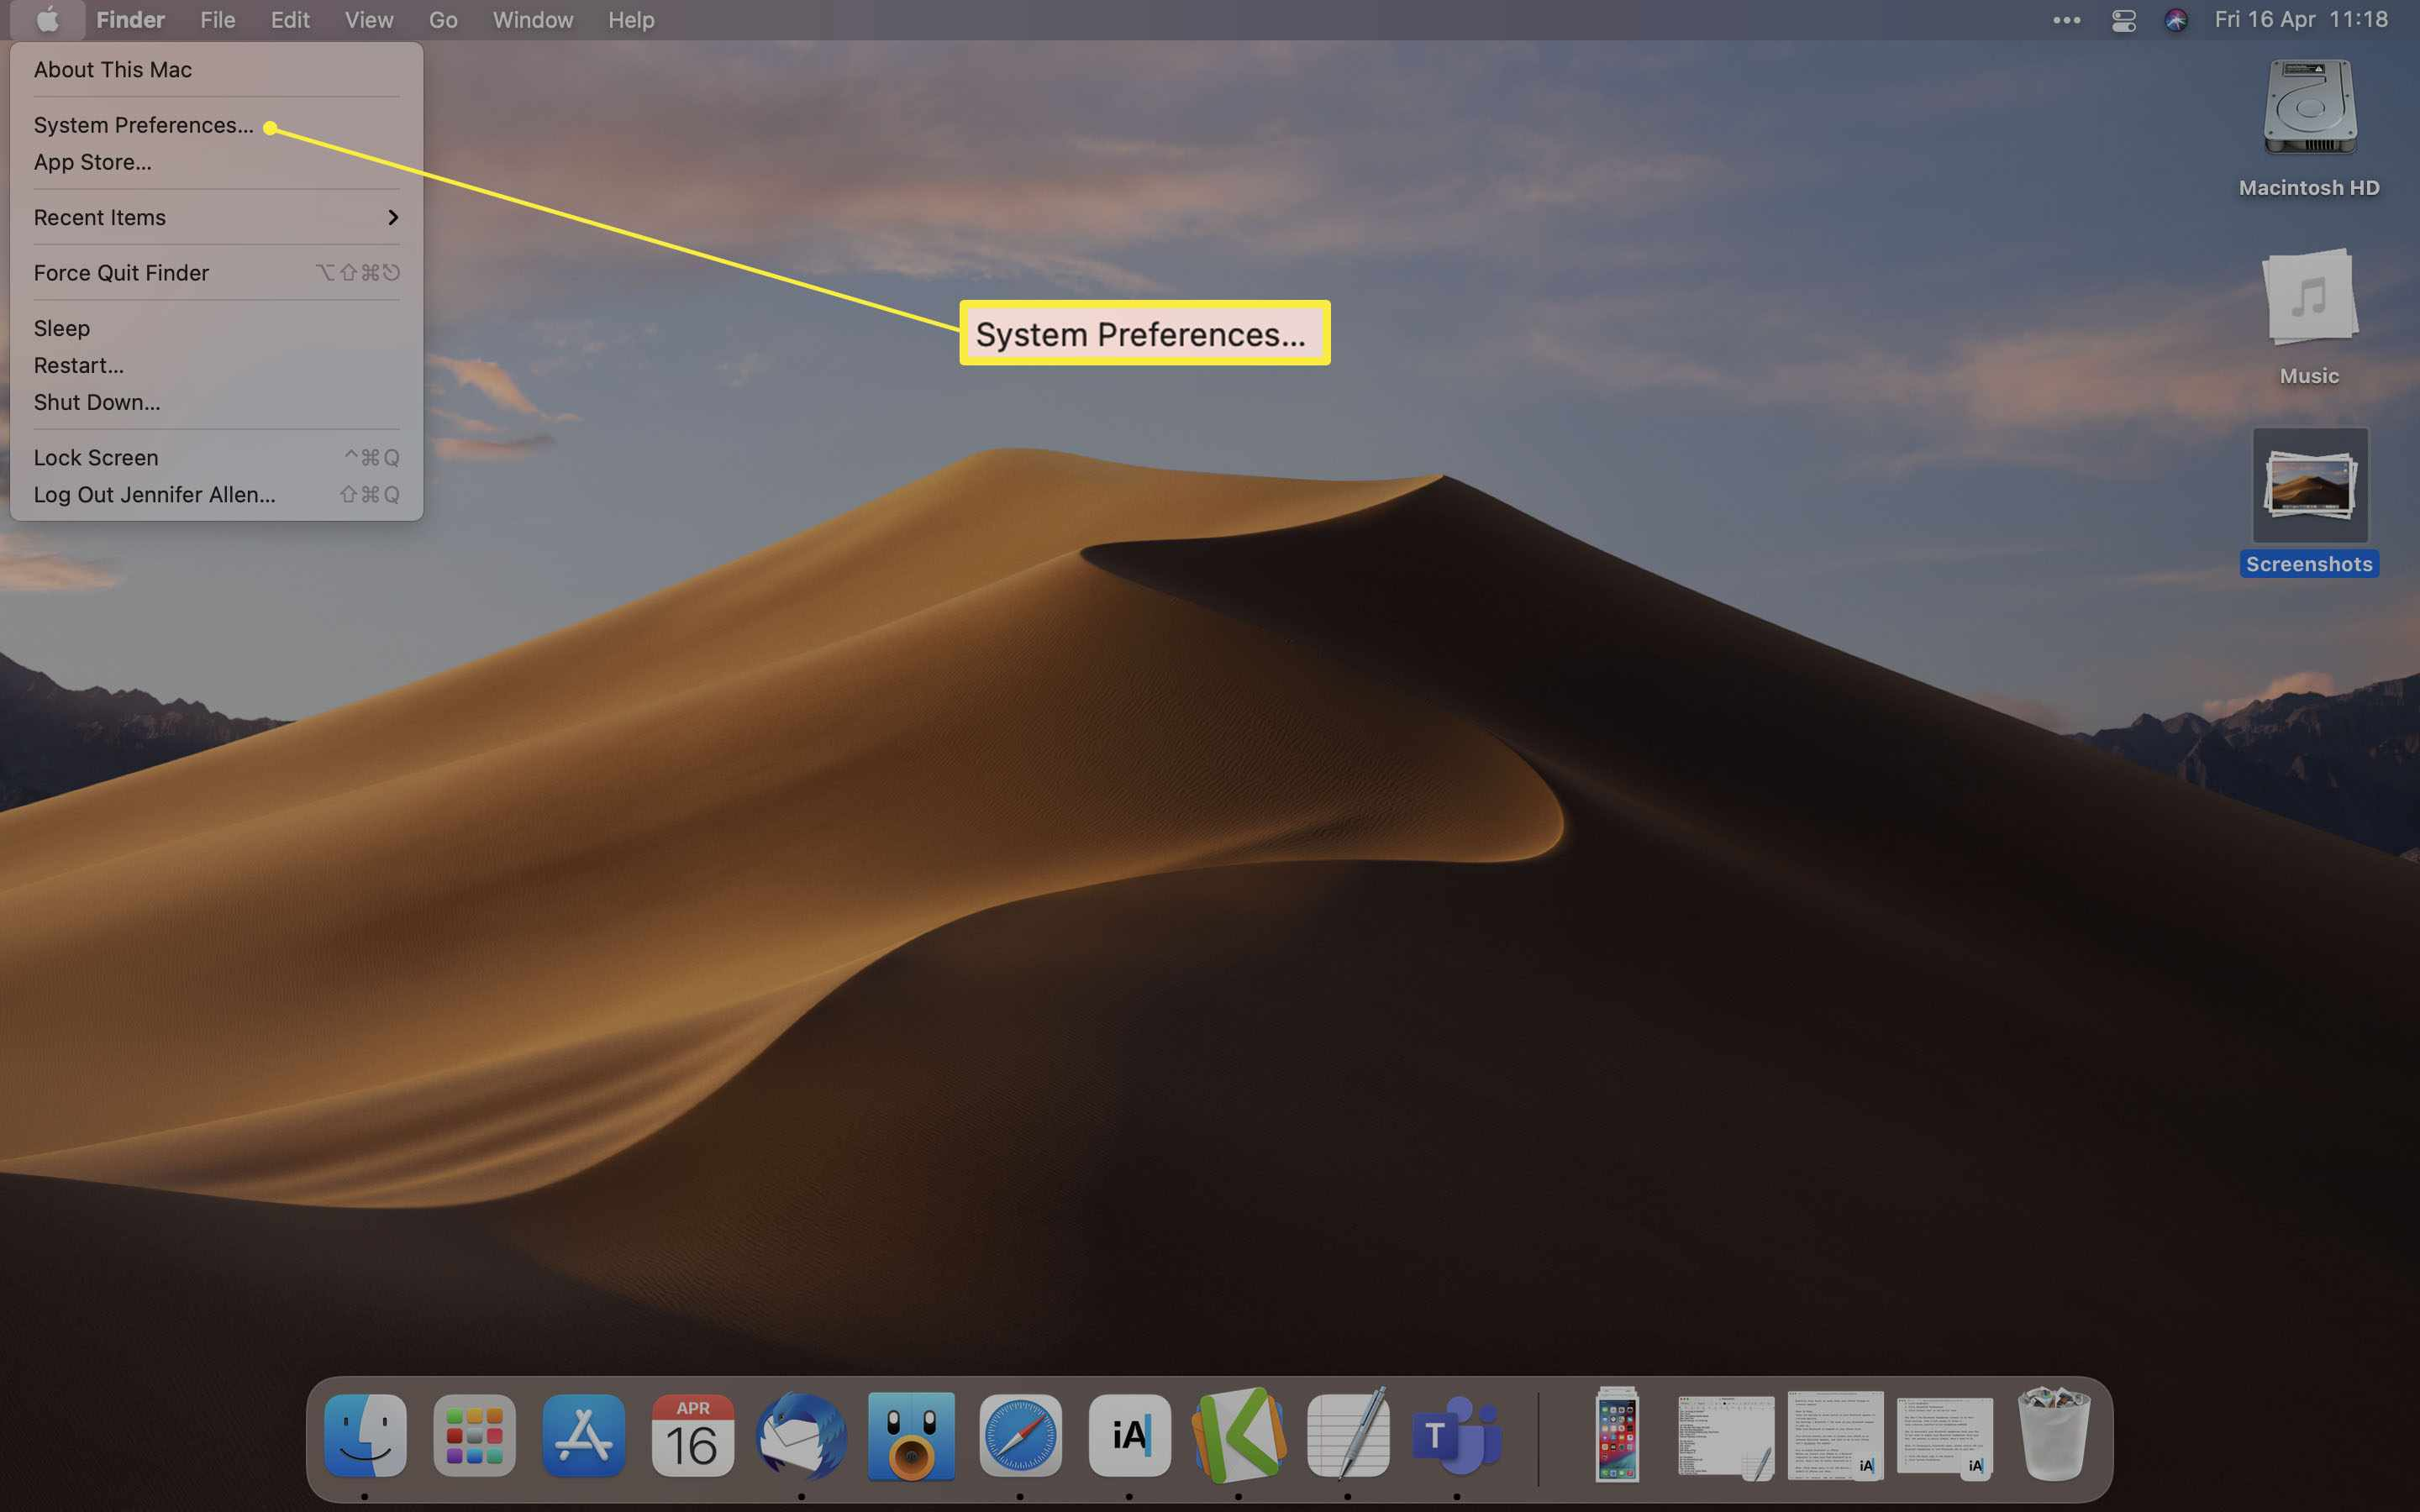 MacOS desktop with System Preferences highlighted